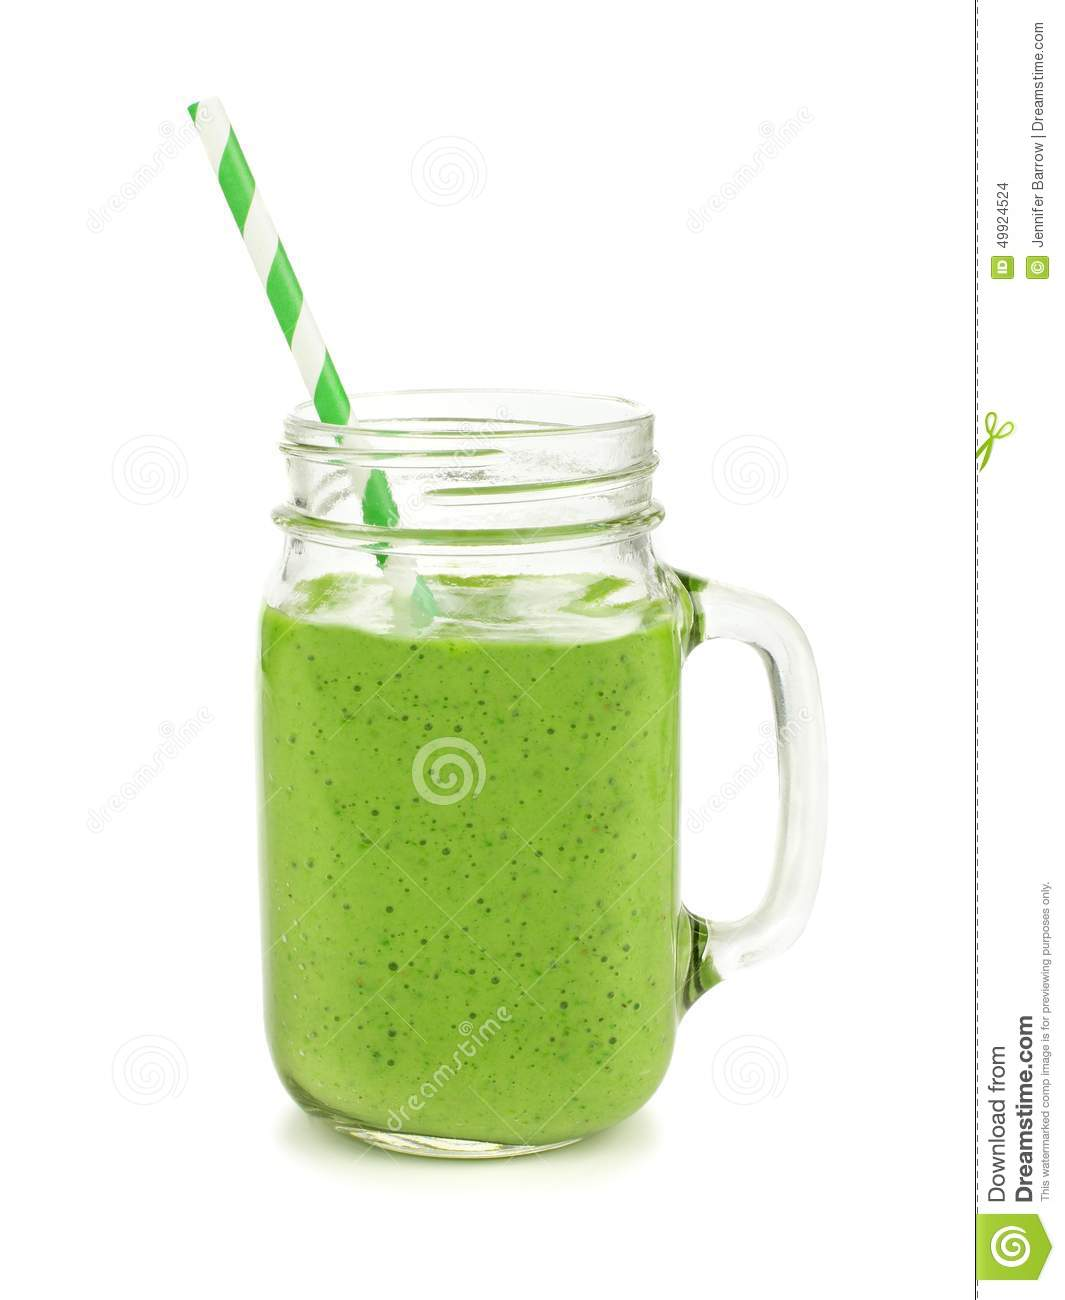 Green Smoothie In A Jar Mug Isolated Stock Photo - Image: 49924524